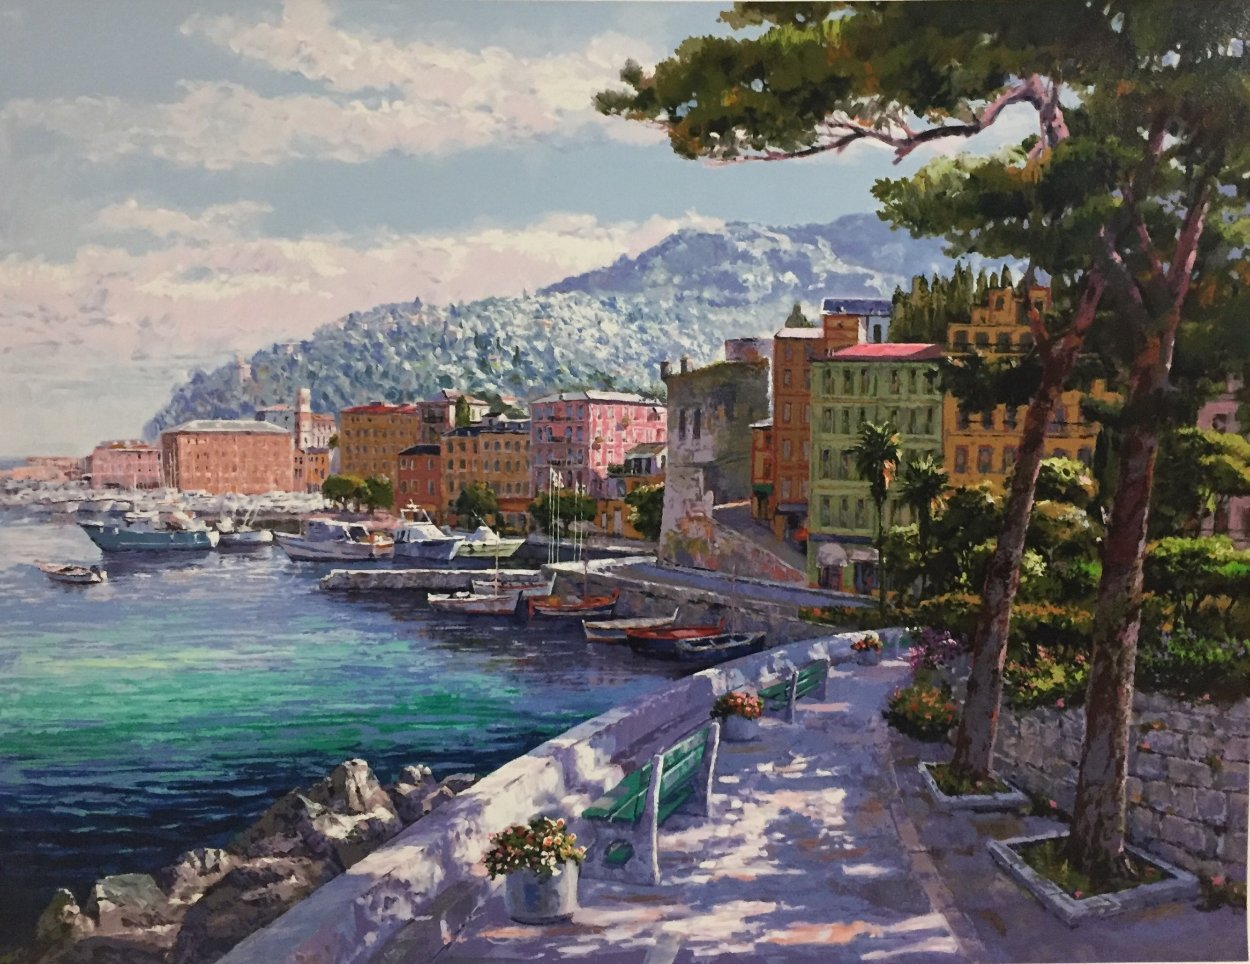 Santa Margherita 1998 Limited Edition Print by Sam Park